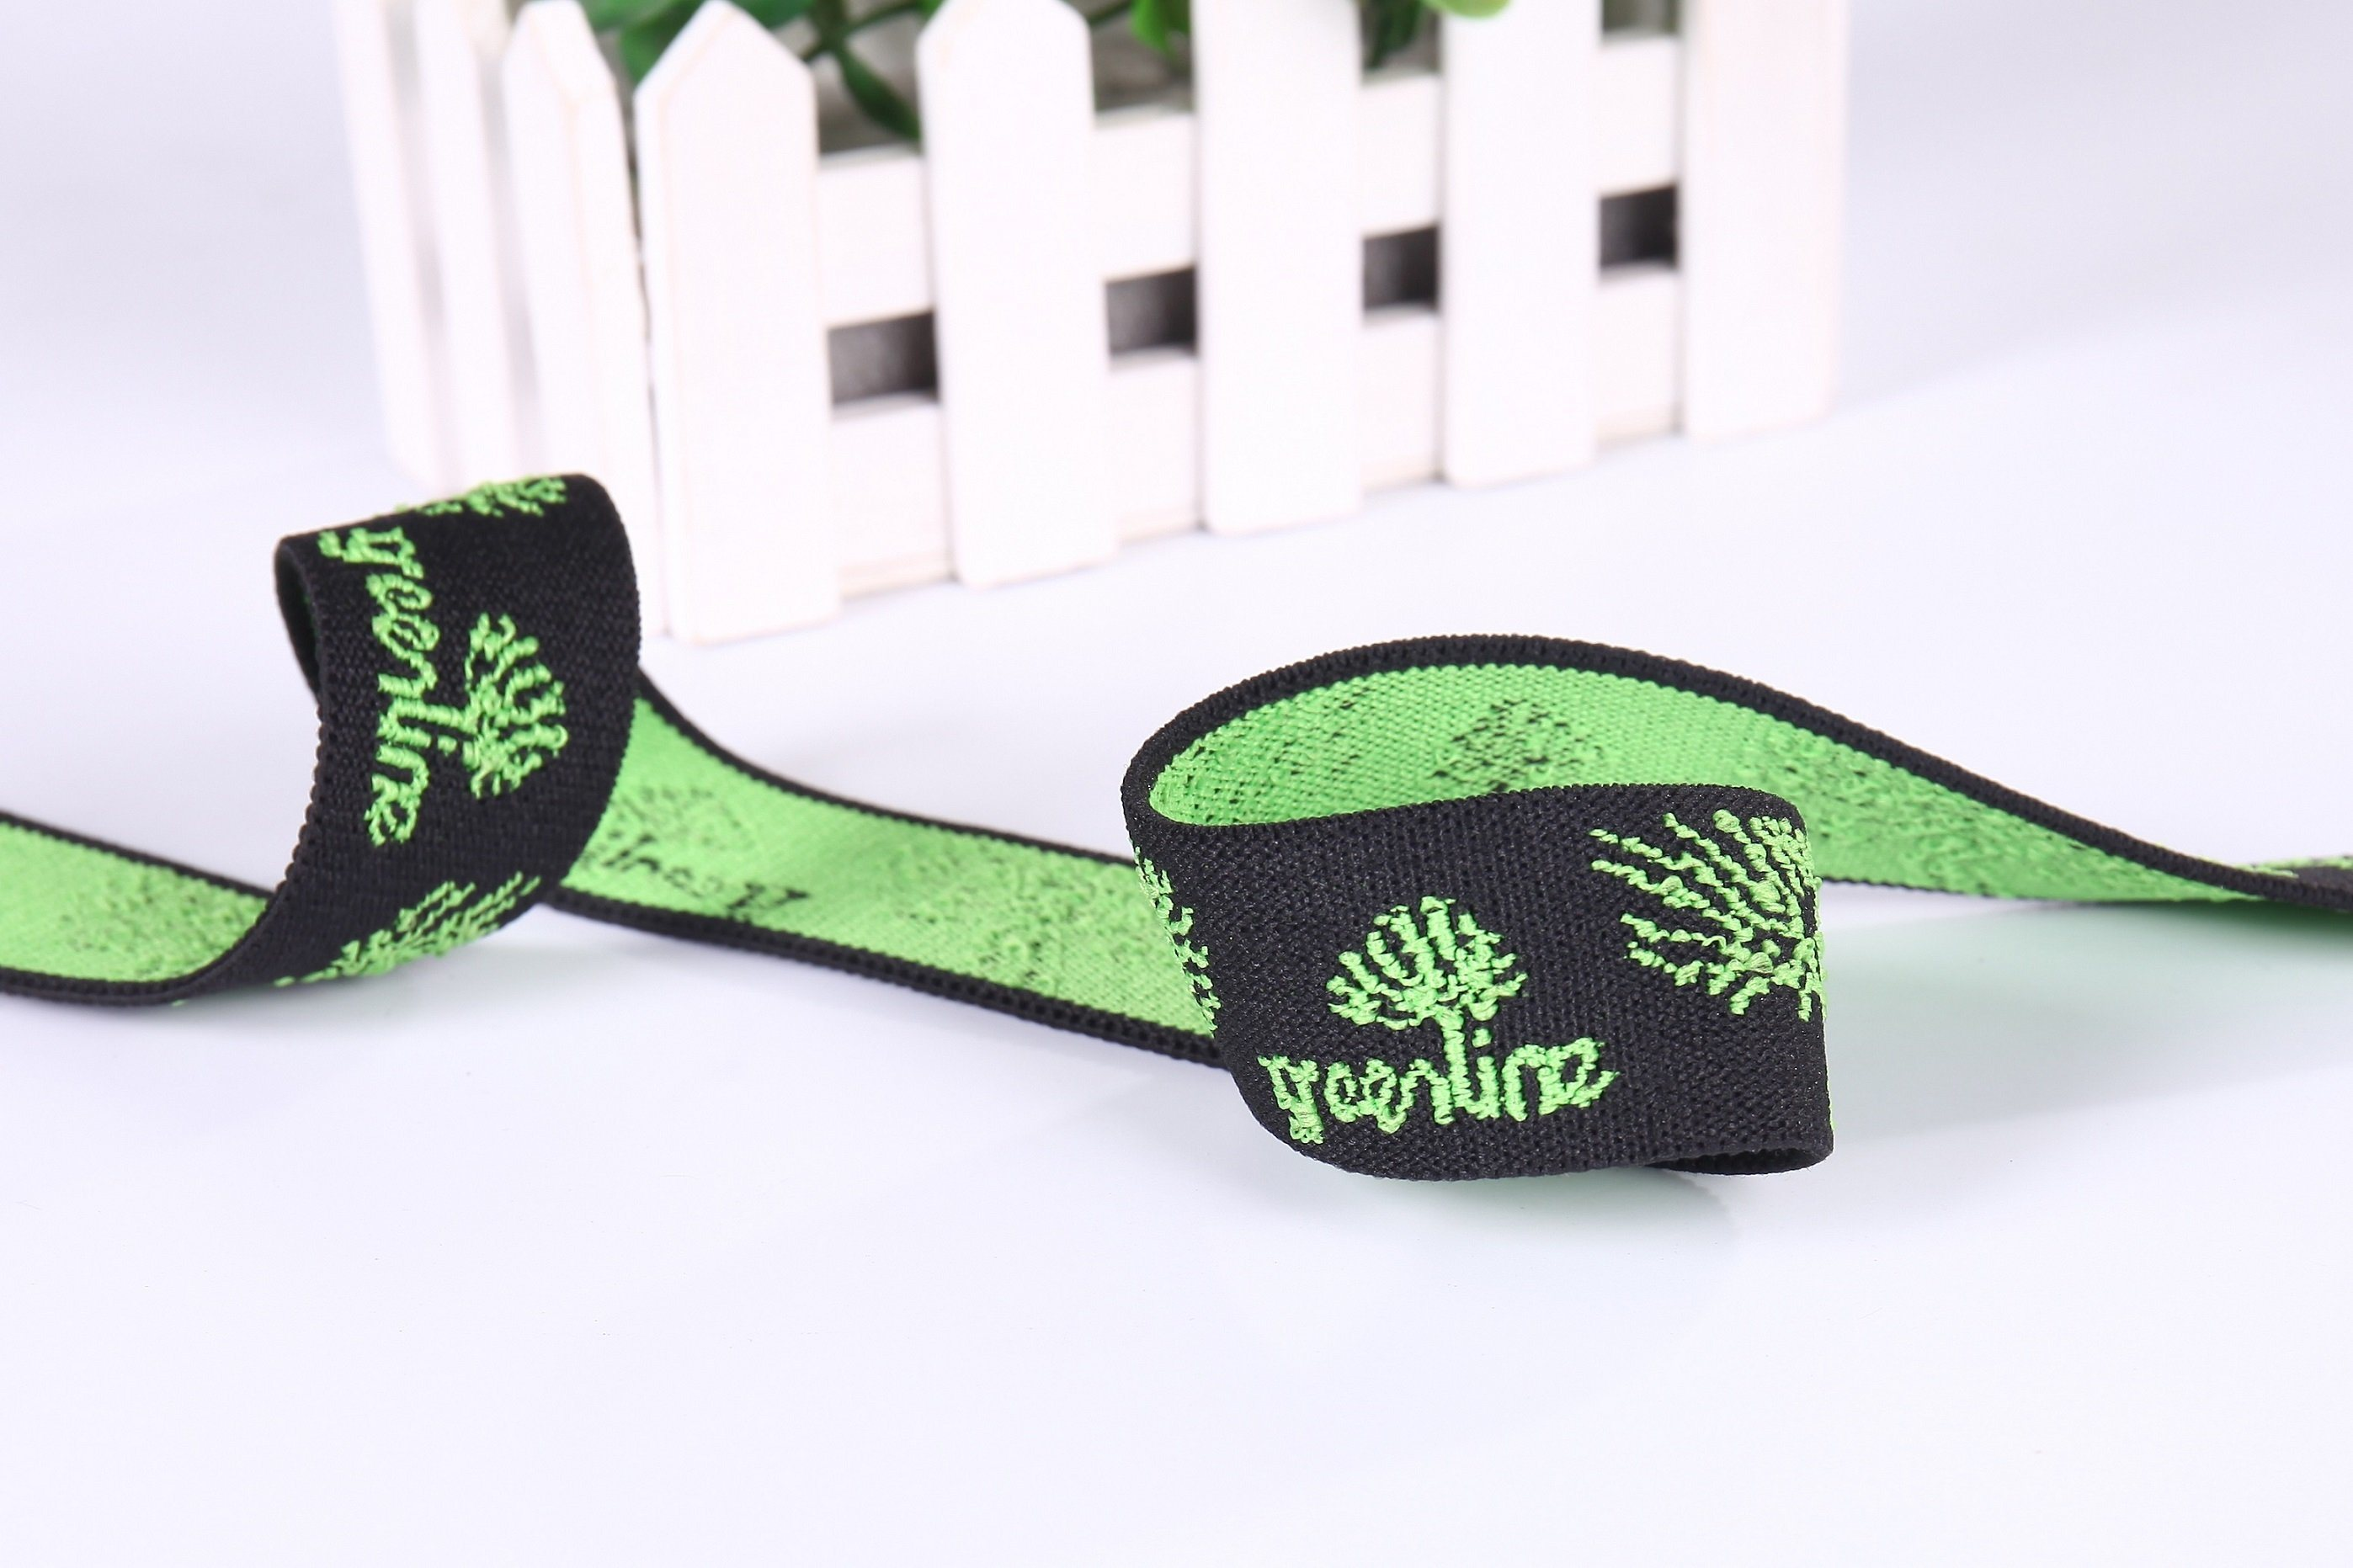 Nylon Customize Knitting Elastic Band Jacquard Webbing for Handbag